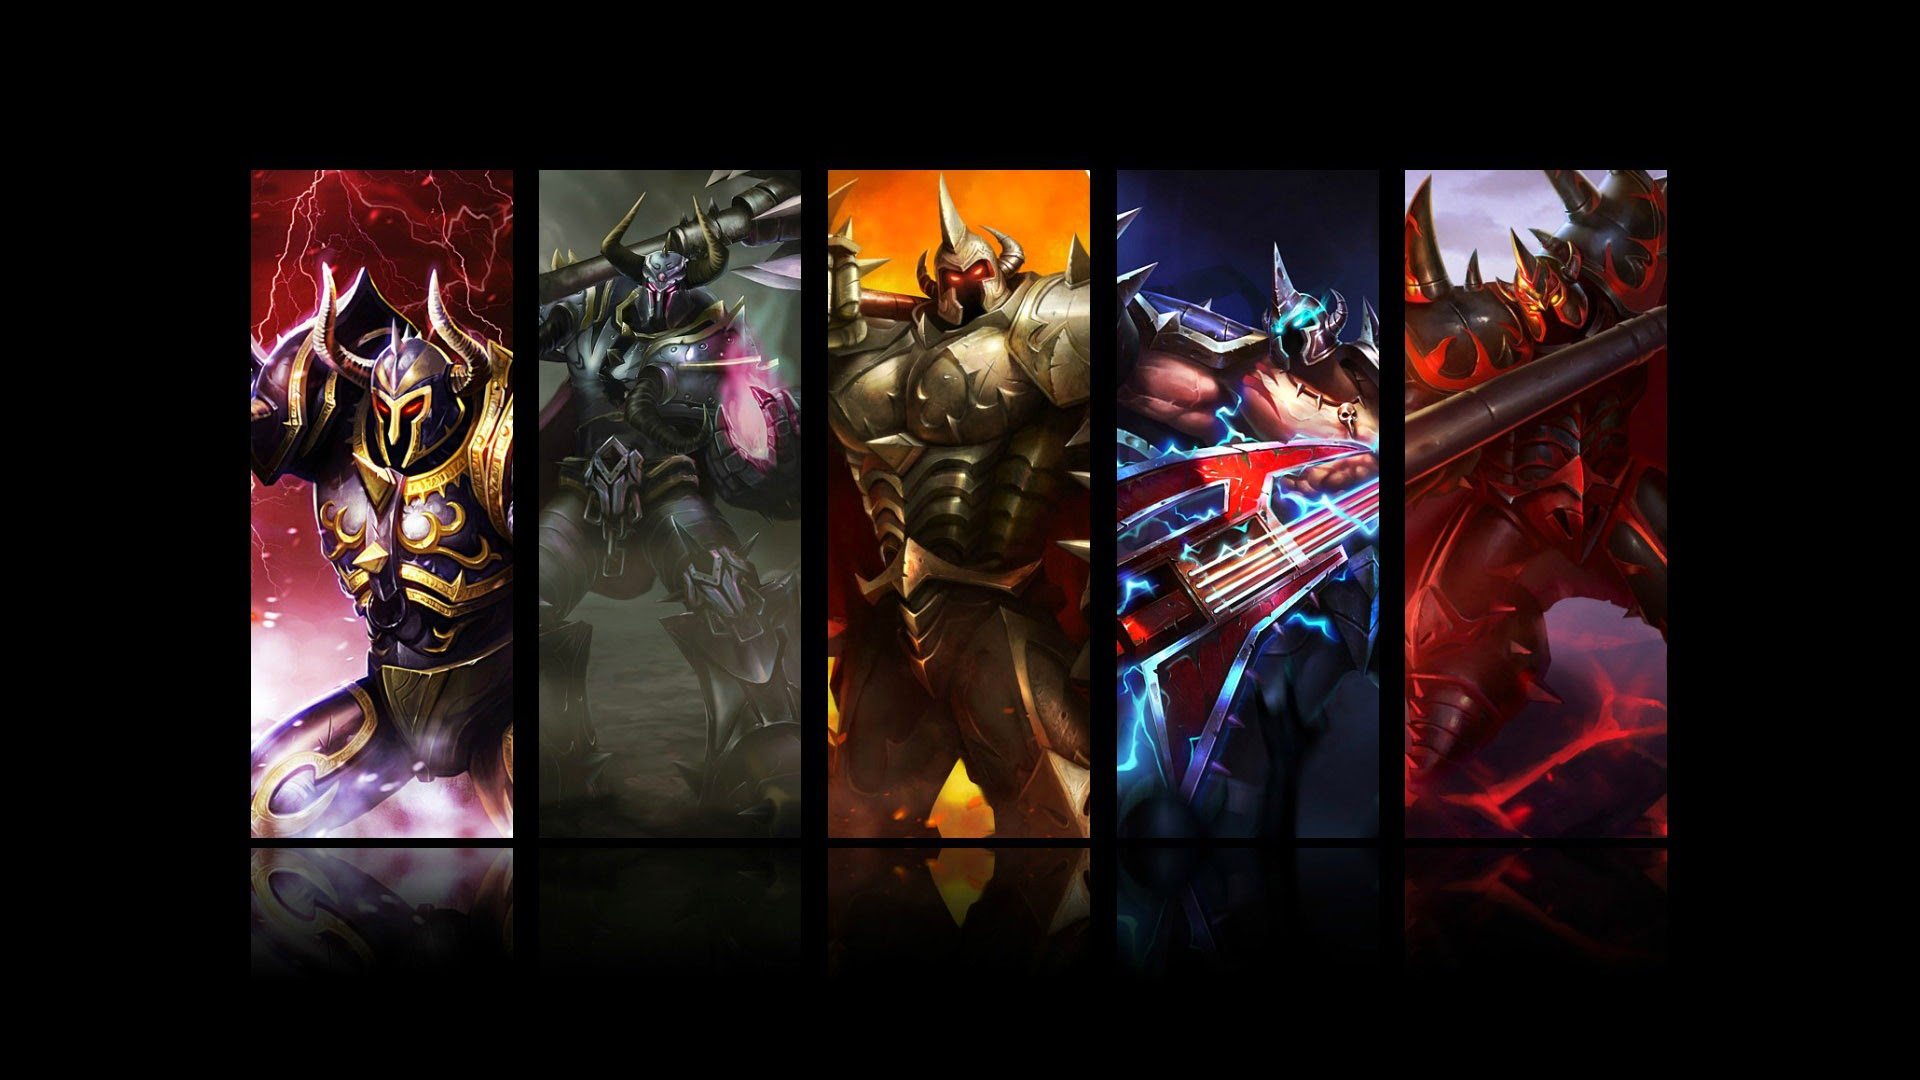 Mordekaiser all skin splash 0h wallpaper hd mordekaiser all skin splash league of legends hd wallpaper voltagebd Images